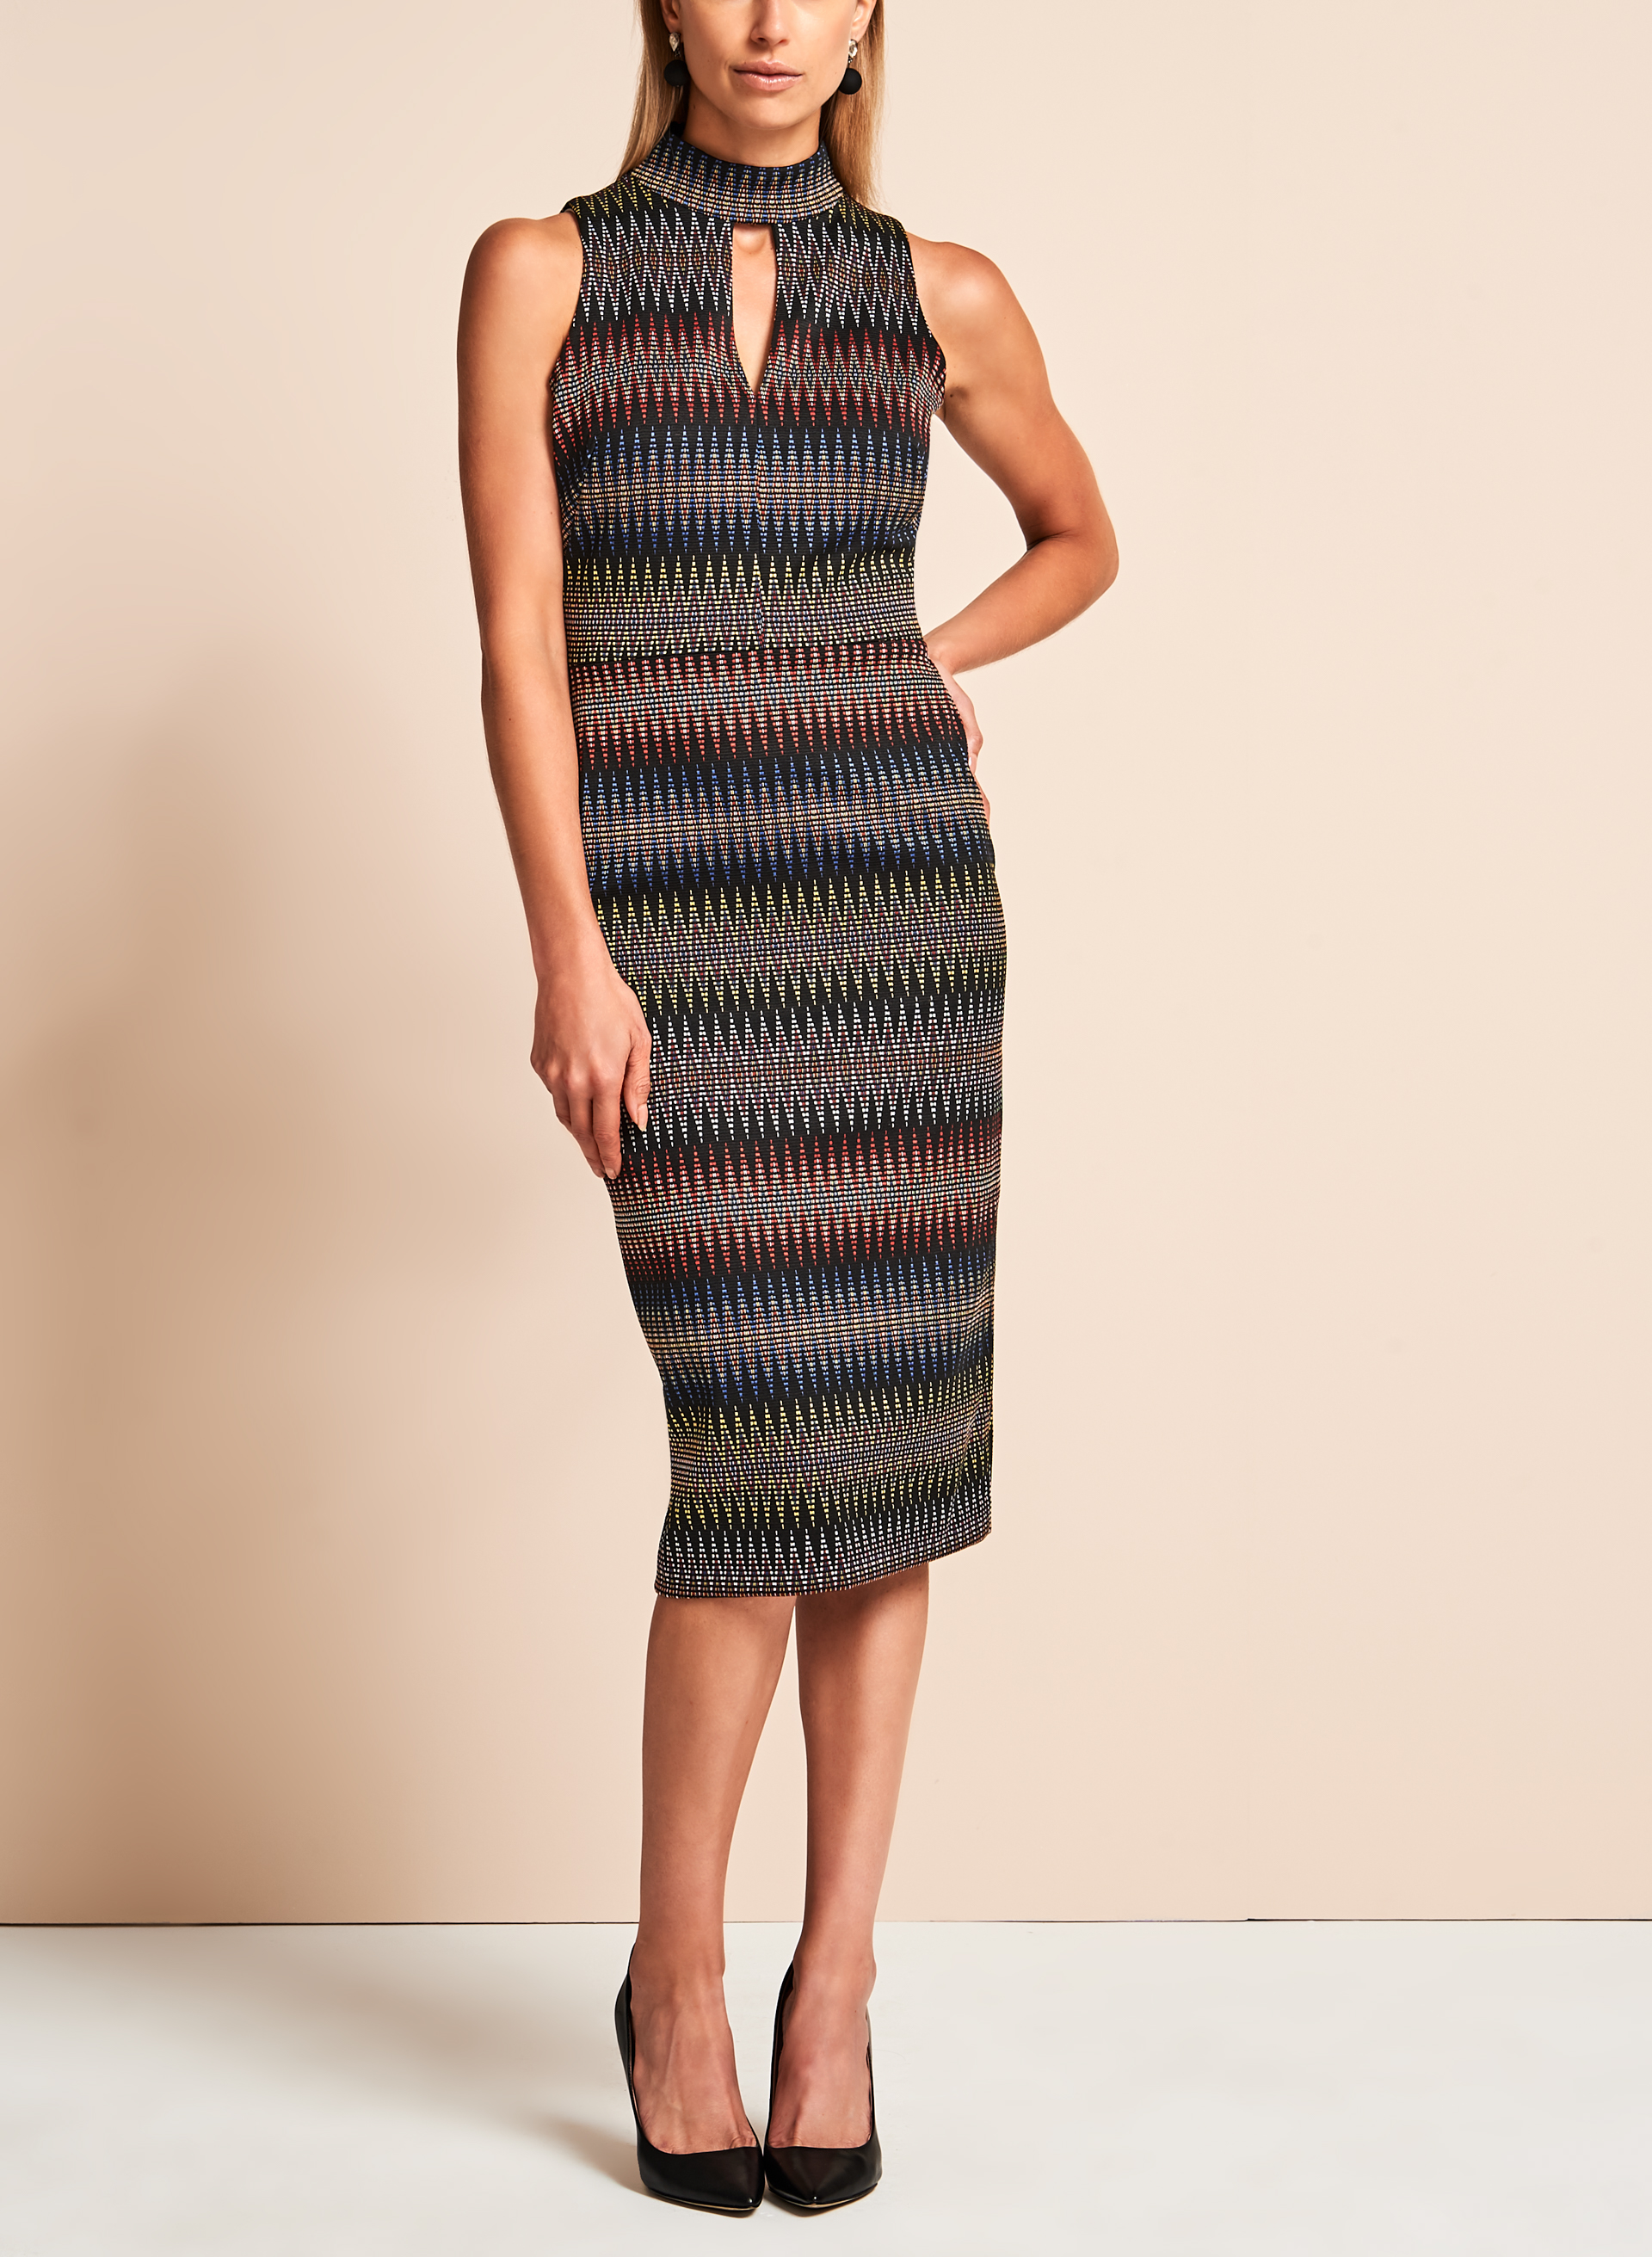 Maggy London Jacquard Zig Zag Print Dress, Multi, hi-res